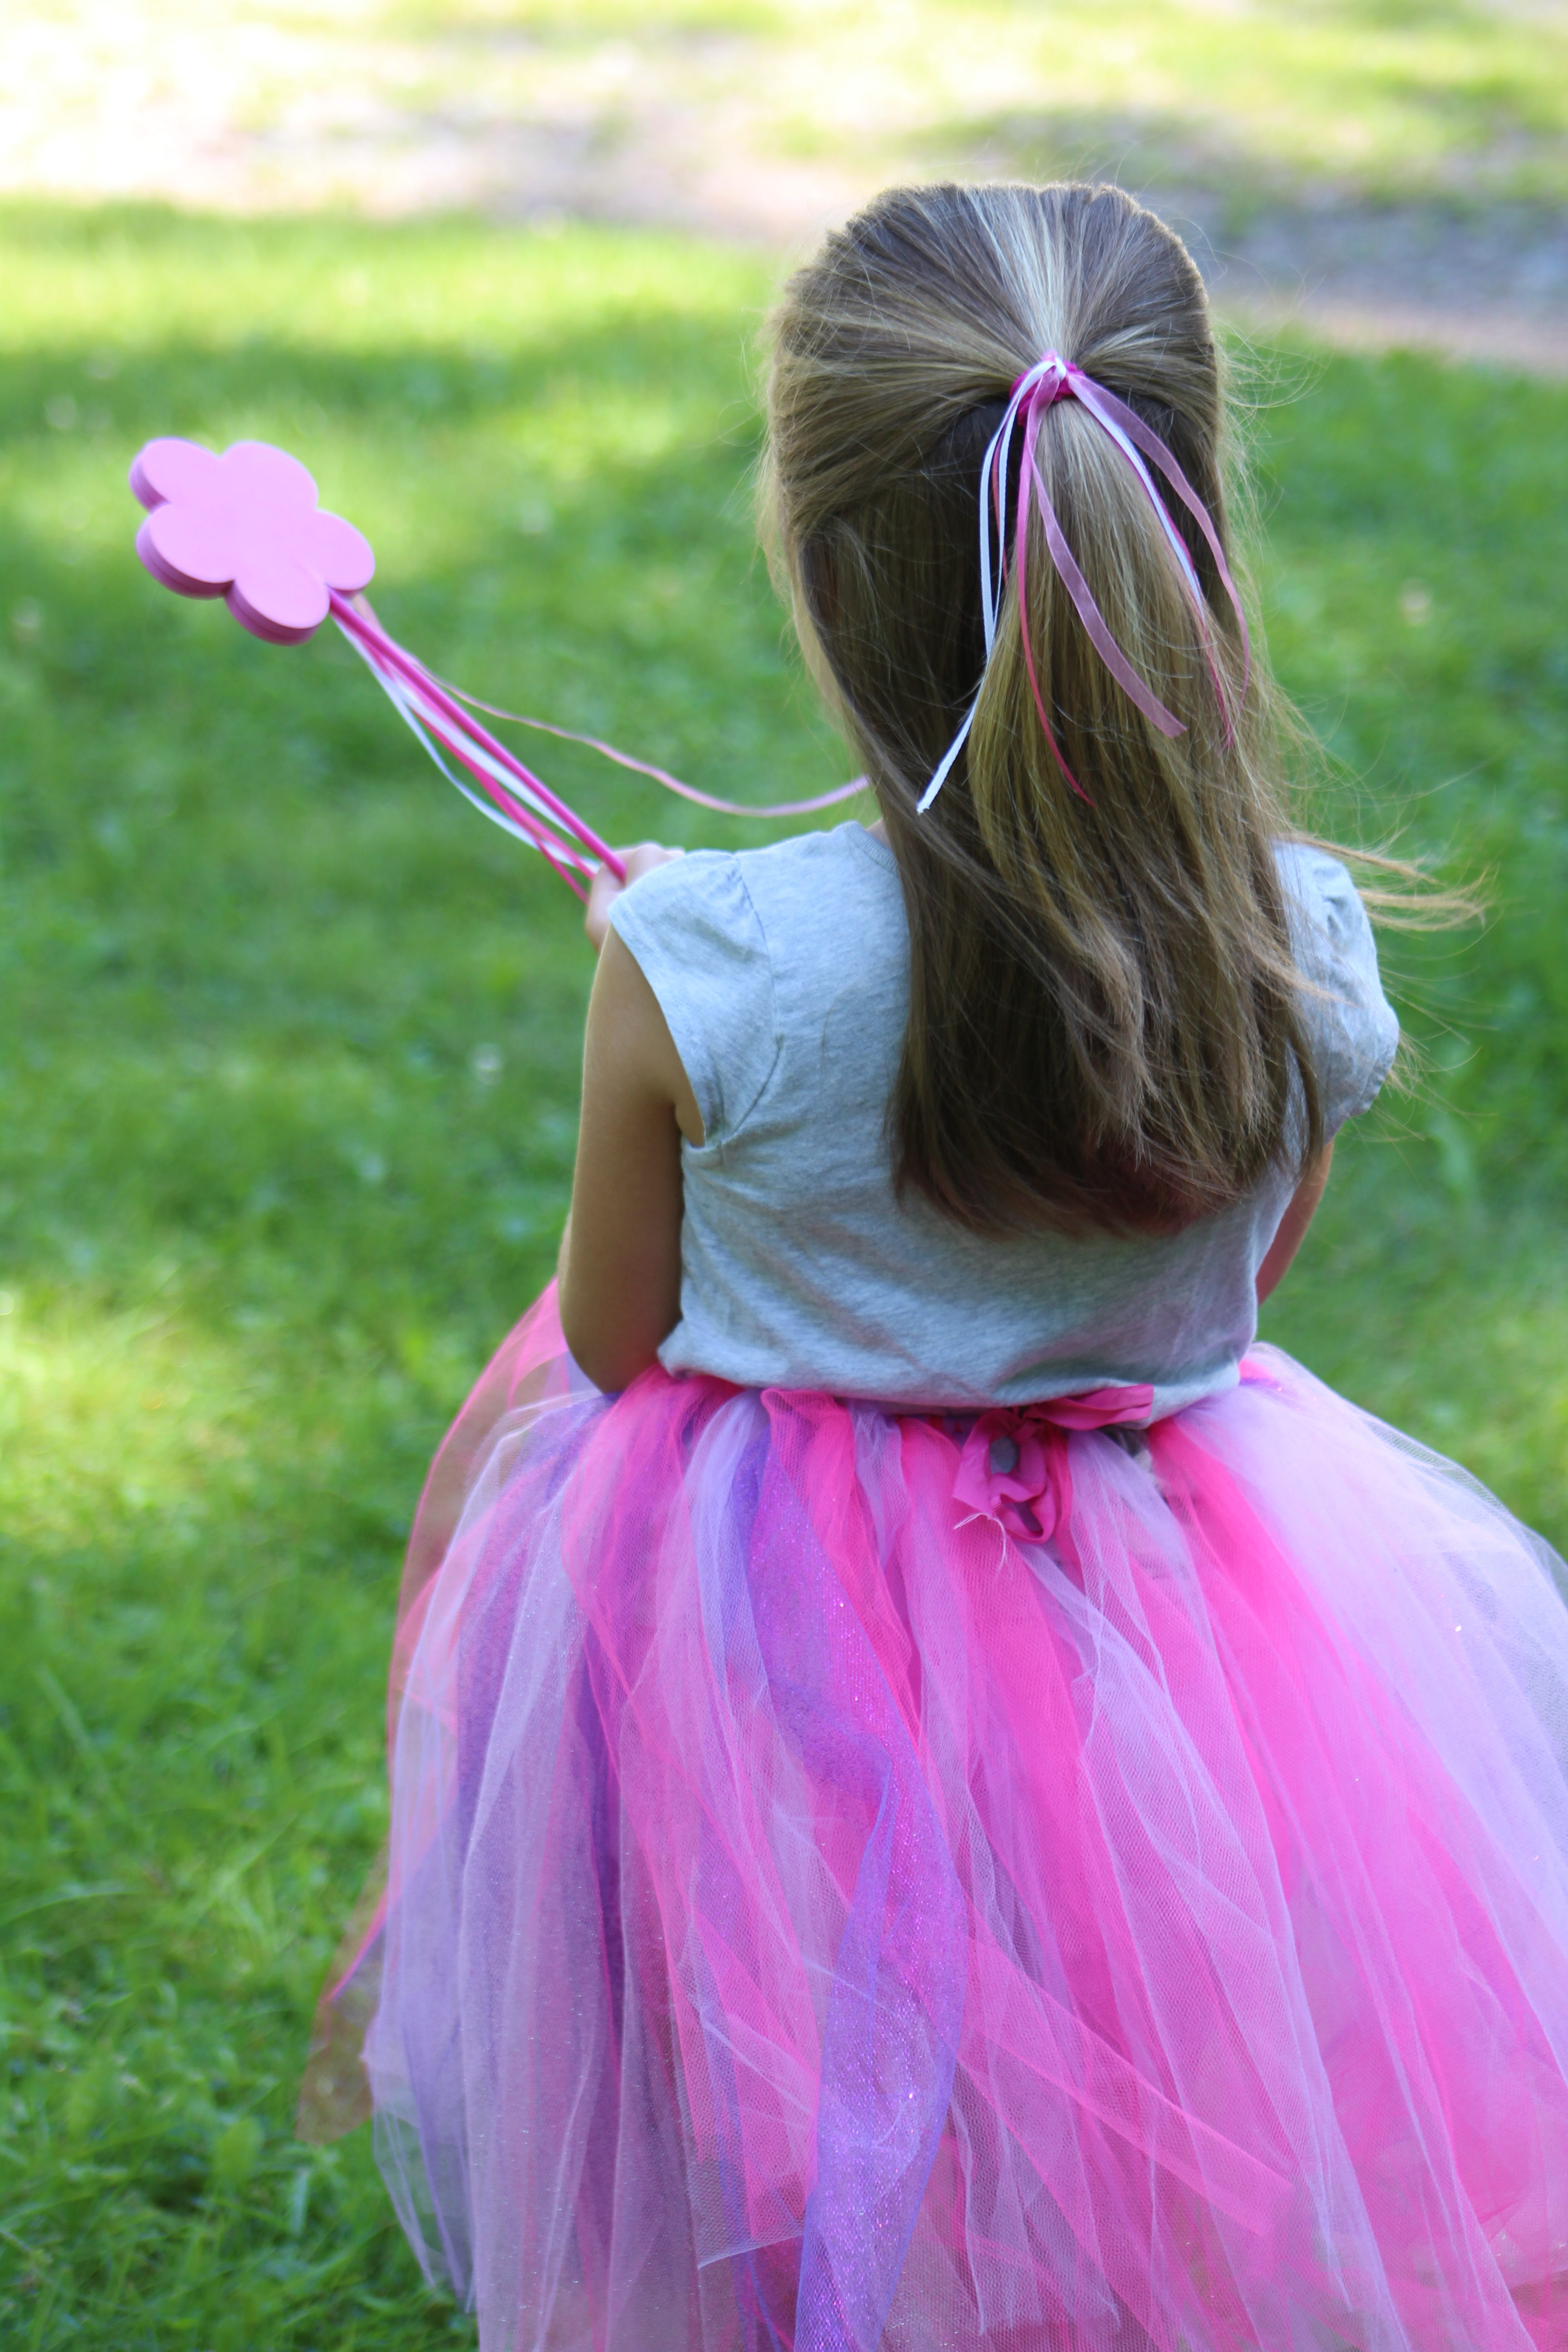 The DIY No Sew Tulle Tutu, princess wand and hair tie are perfect for your adventure seeking princess!